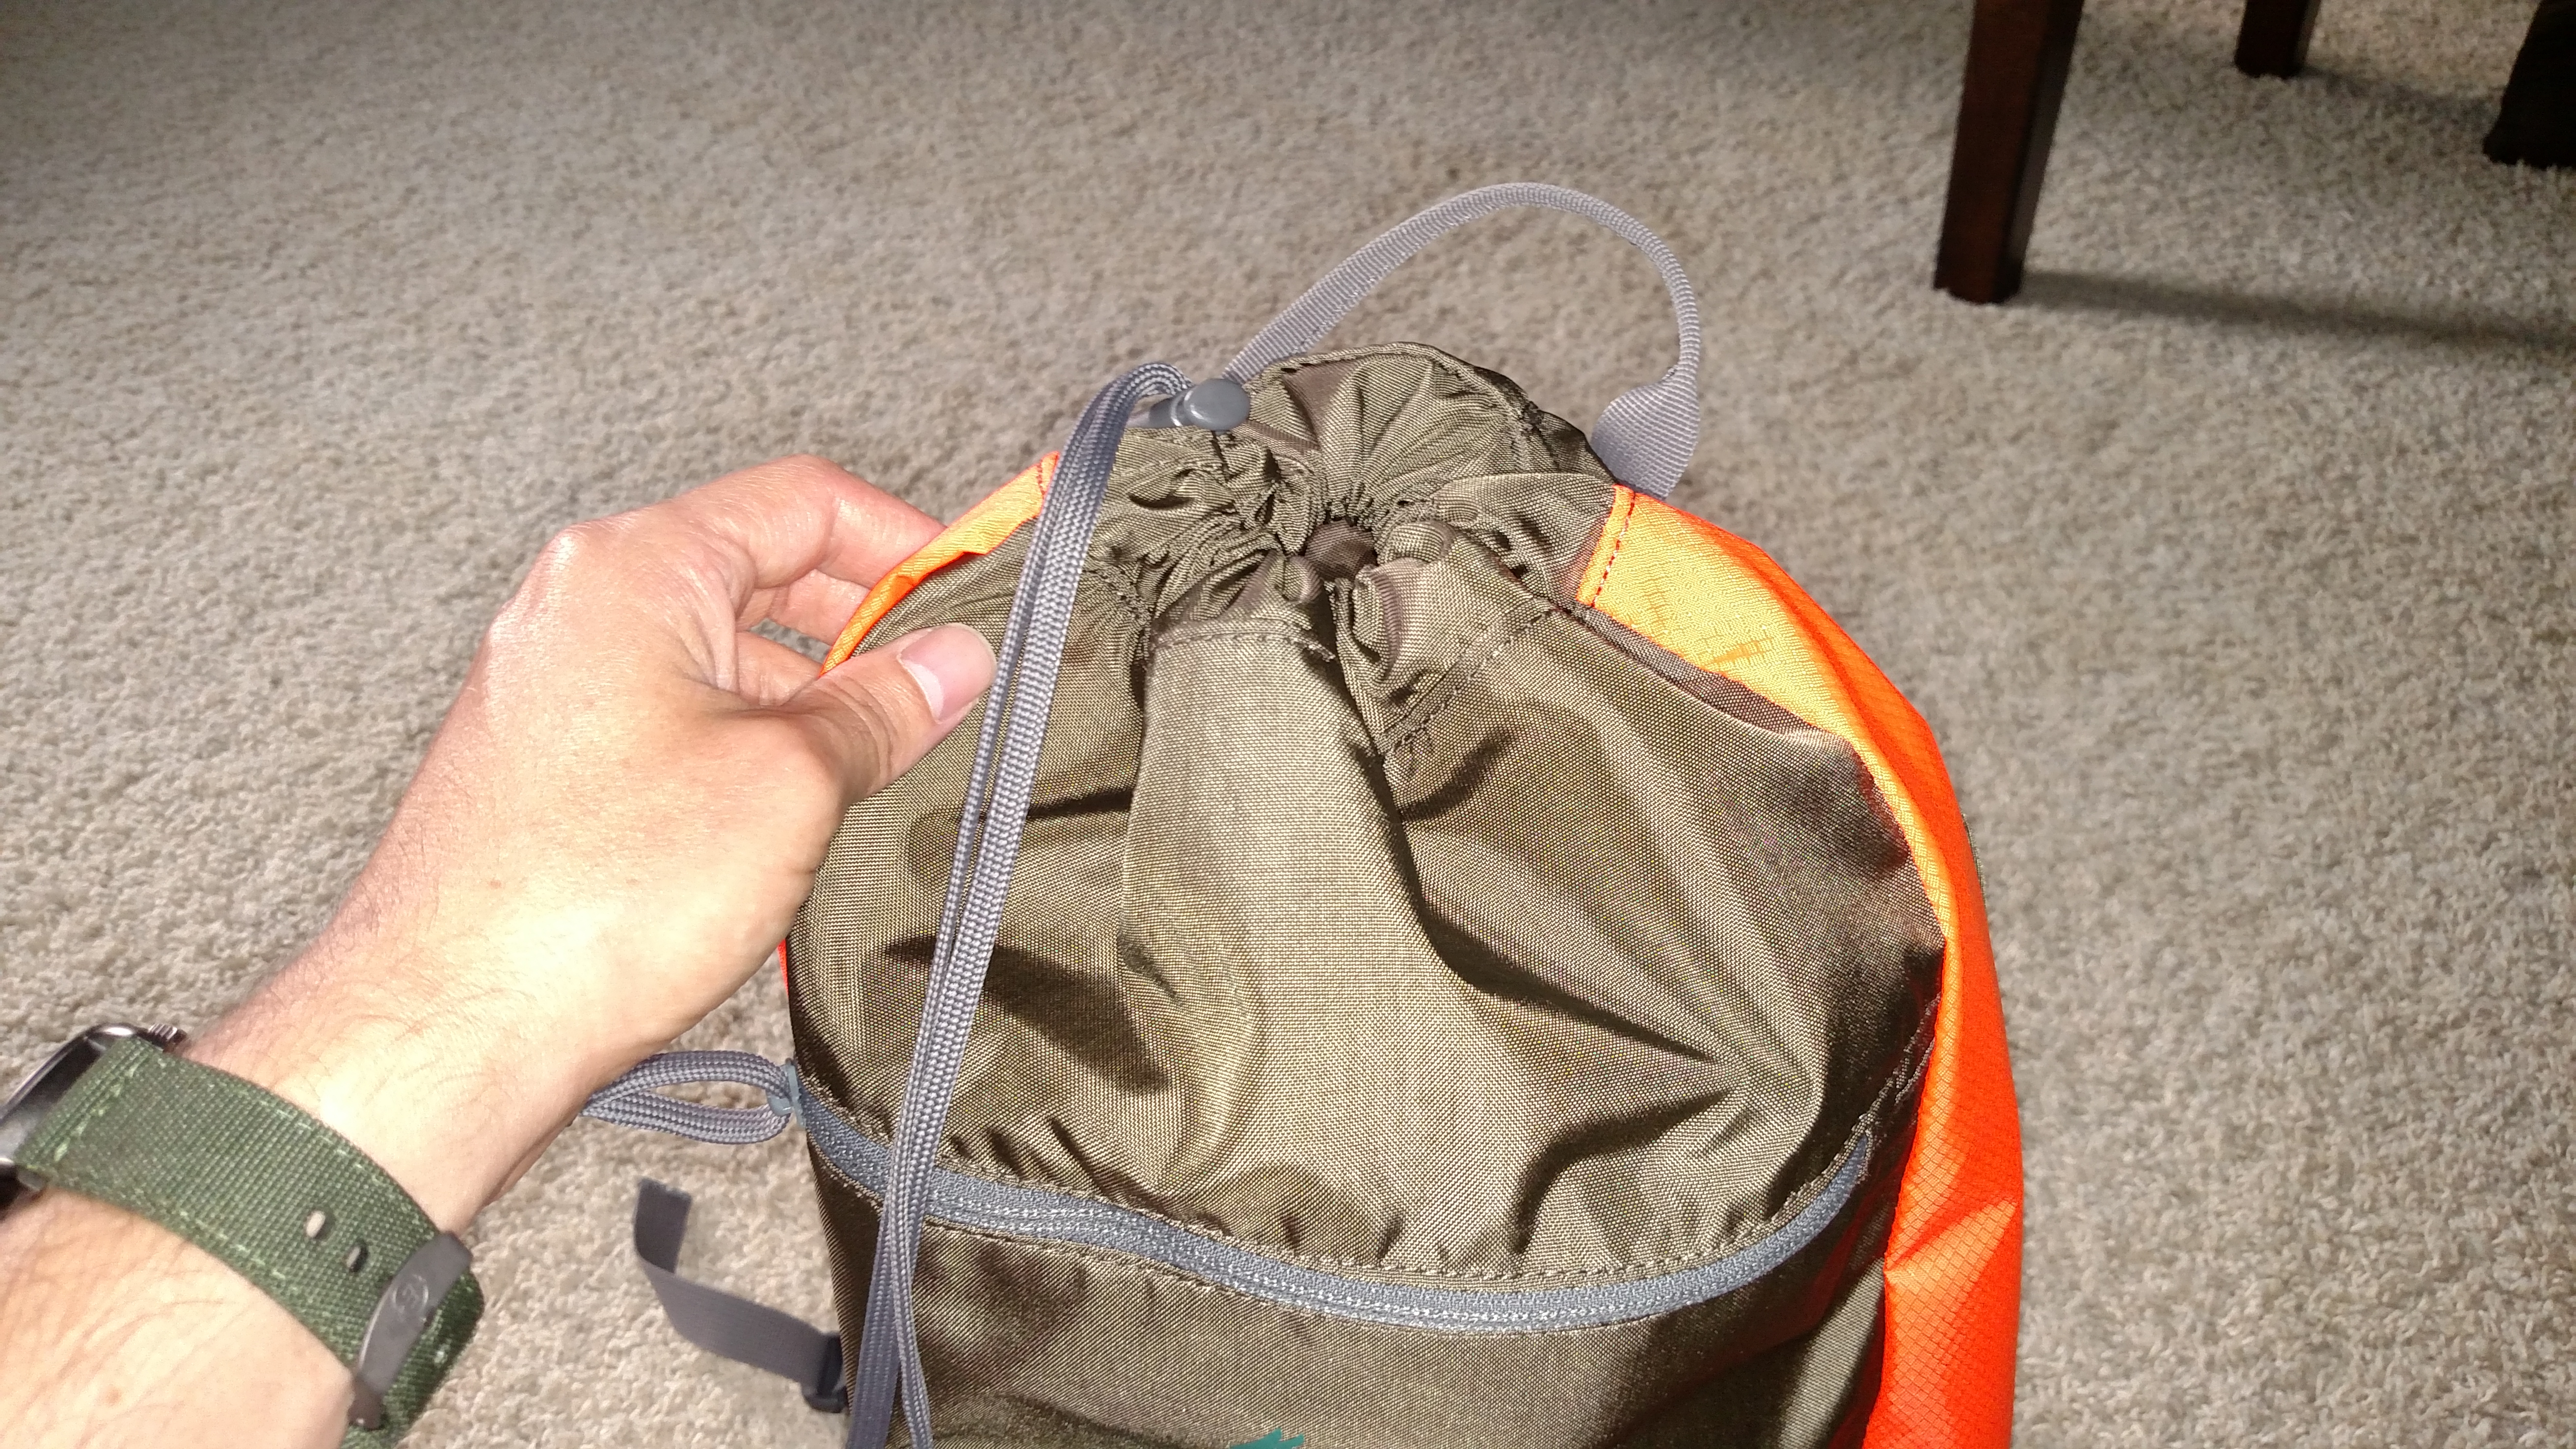 Here's the drawstring and the zippered pouch.